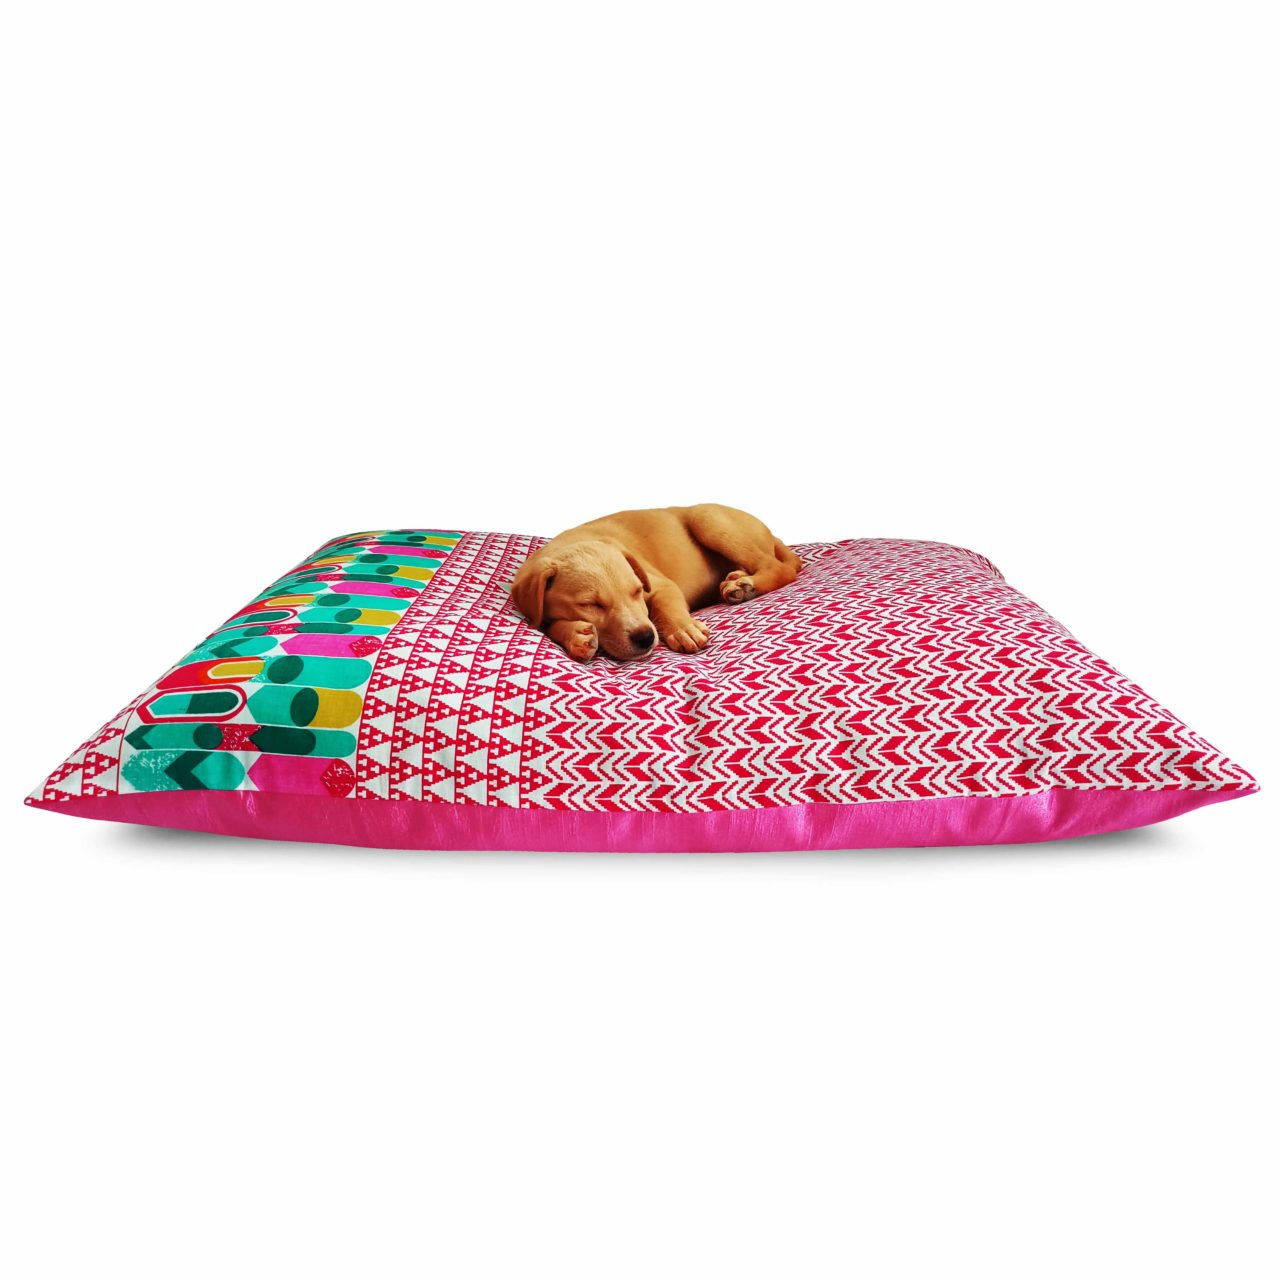 Waterproof Dog Bed Pink & Green Print | Luxury Dog Beds On Prazuchi